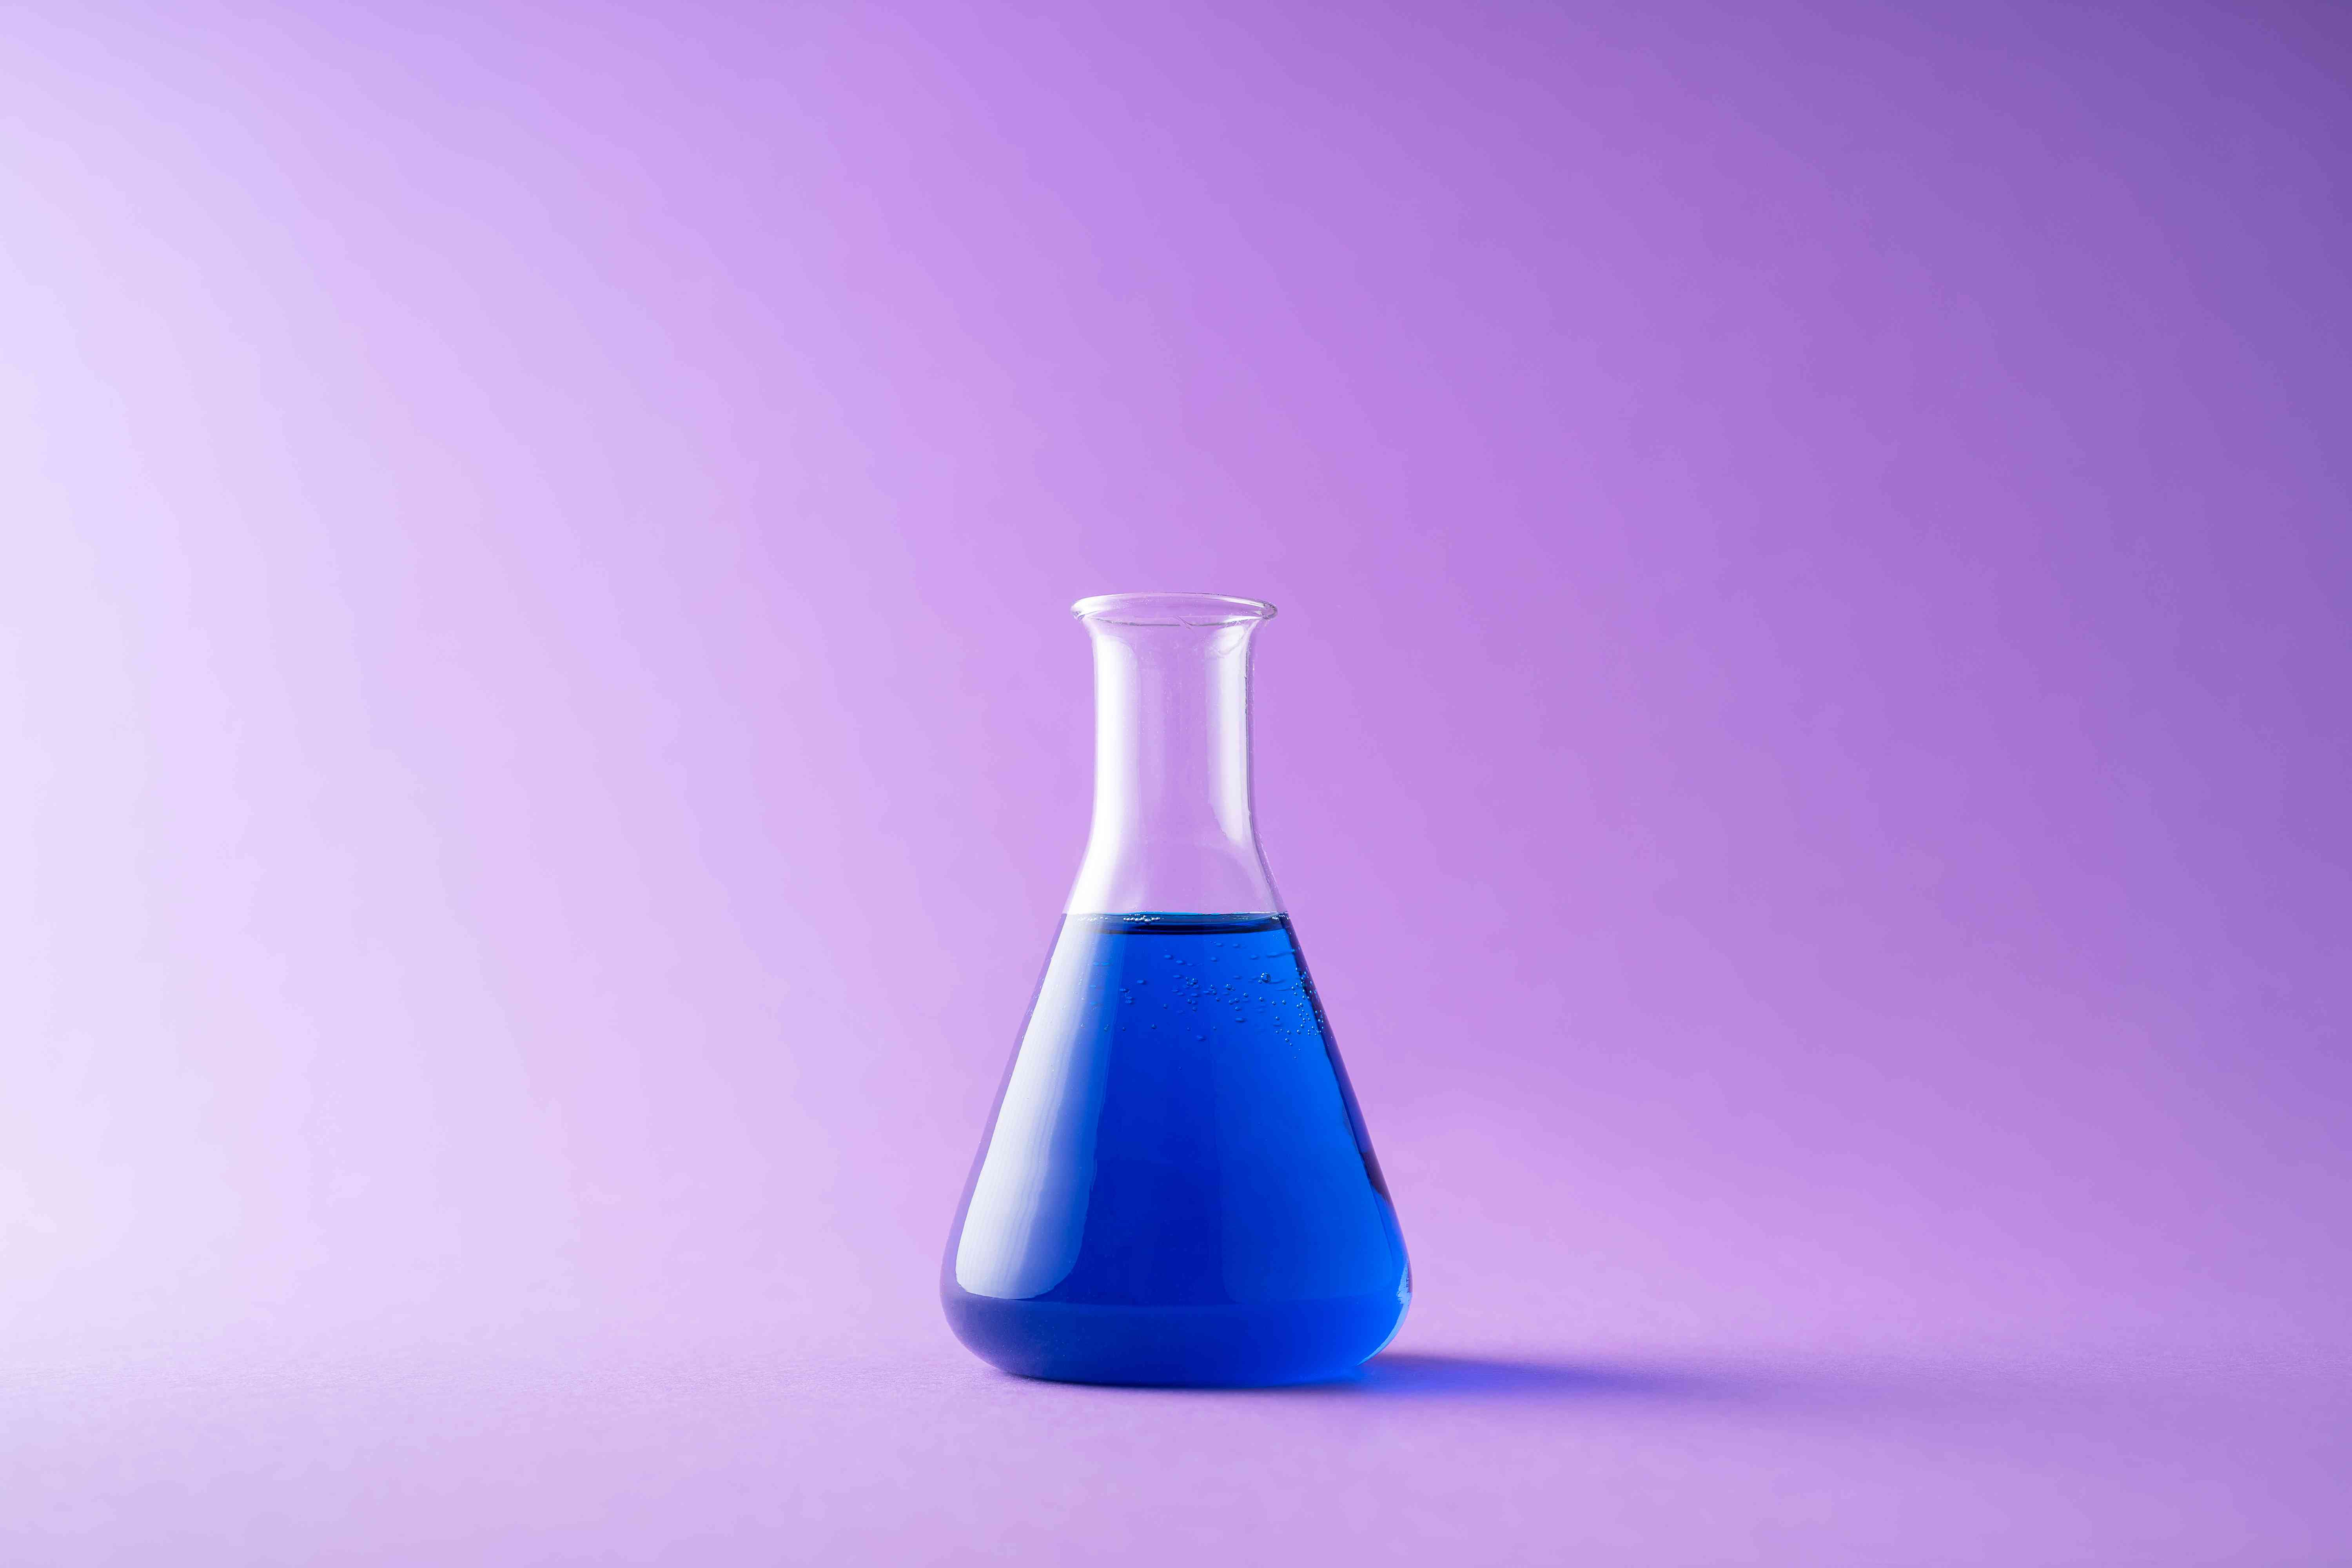 A flask with blue liquid